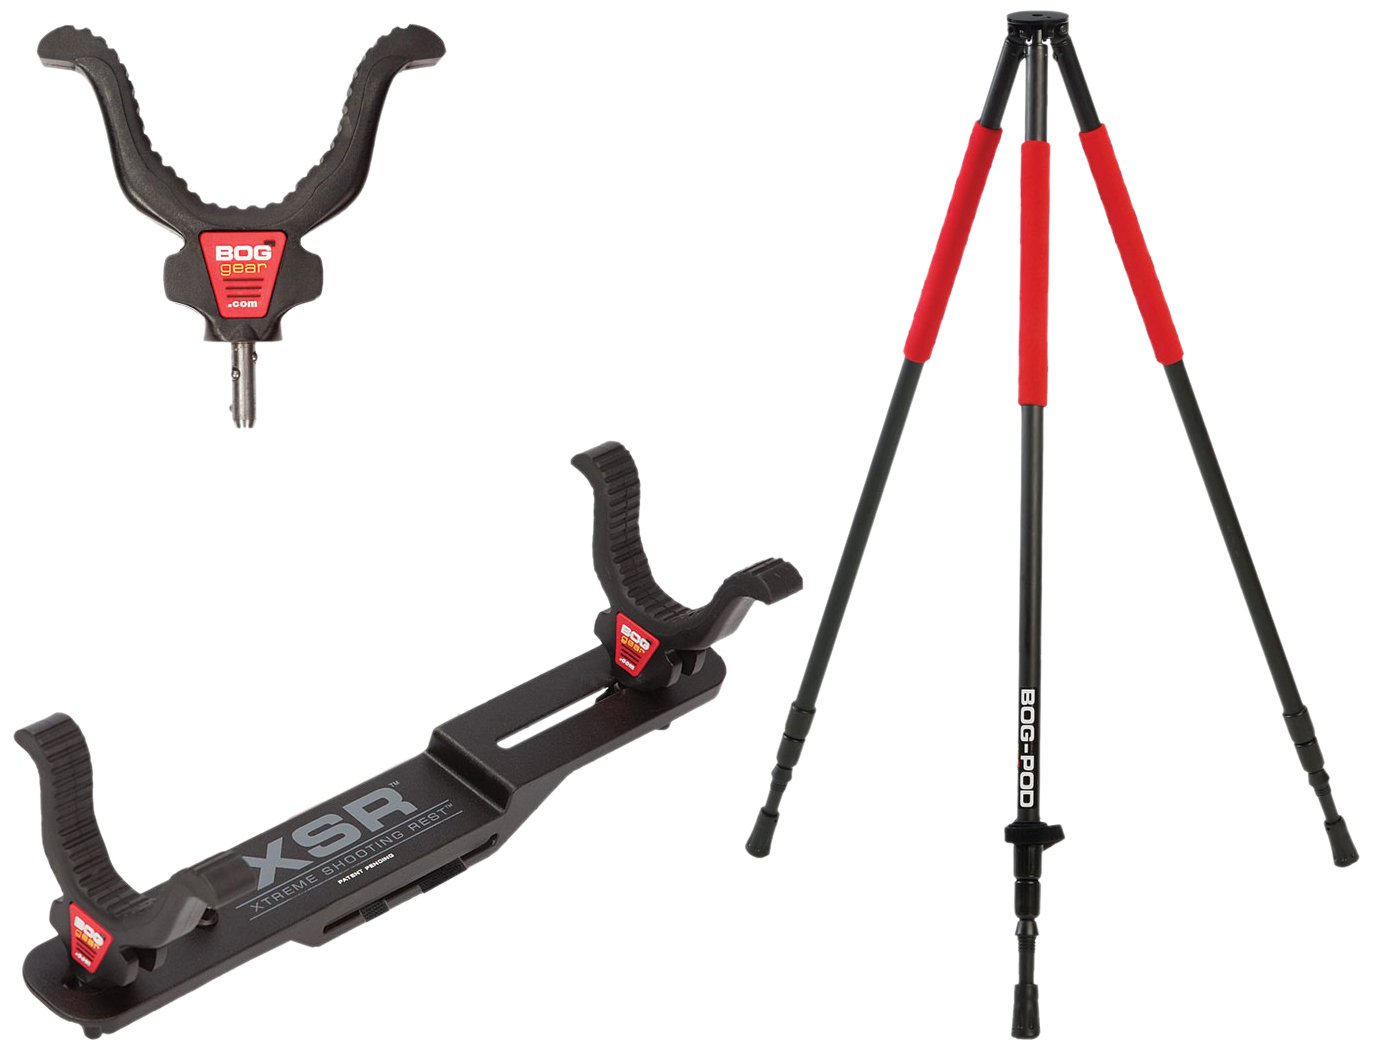 BOG Super Steady Tripod Kit with Lightweight Construction, Easy Assembly and Multiple Setup Options for Hunting, Shooting and Outdoors by BOG